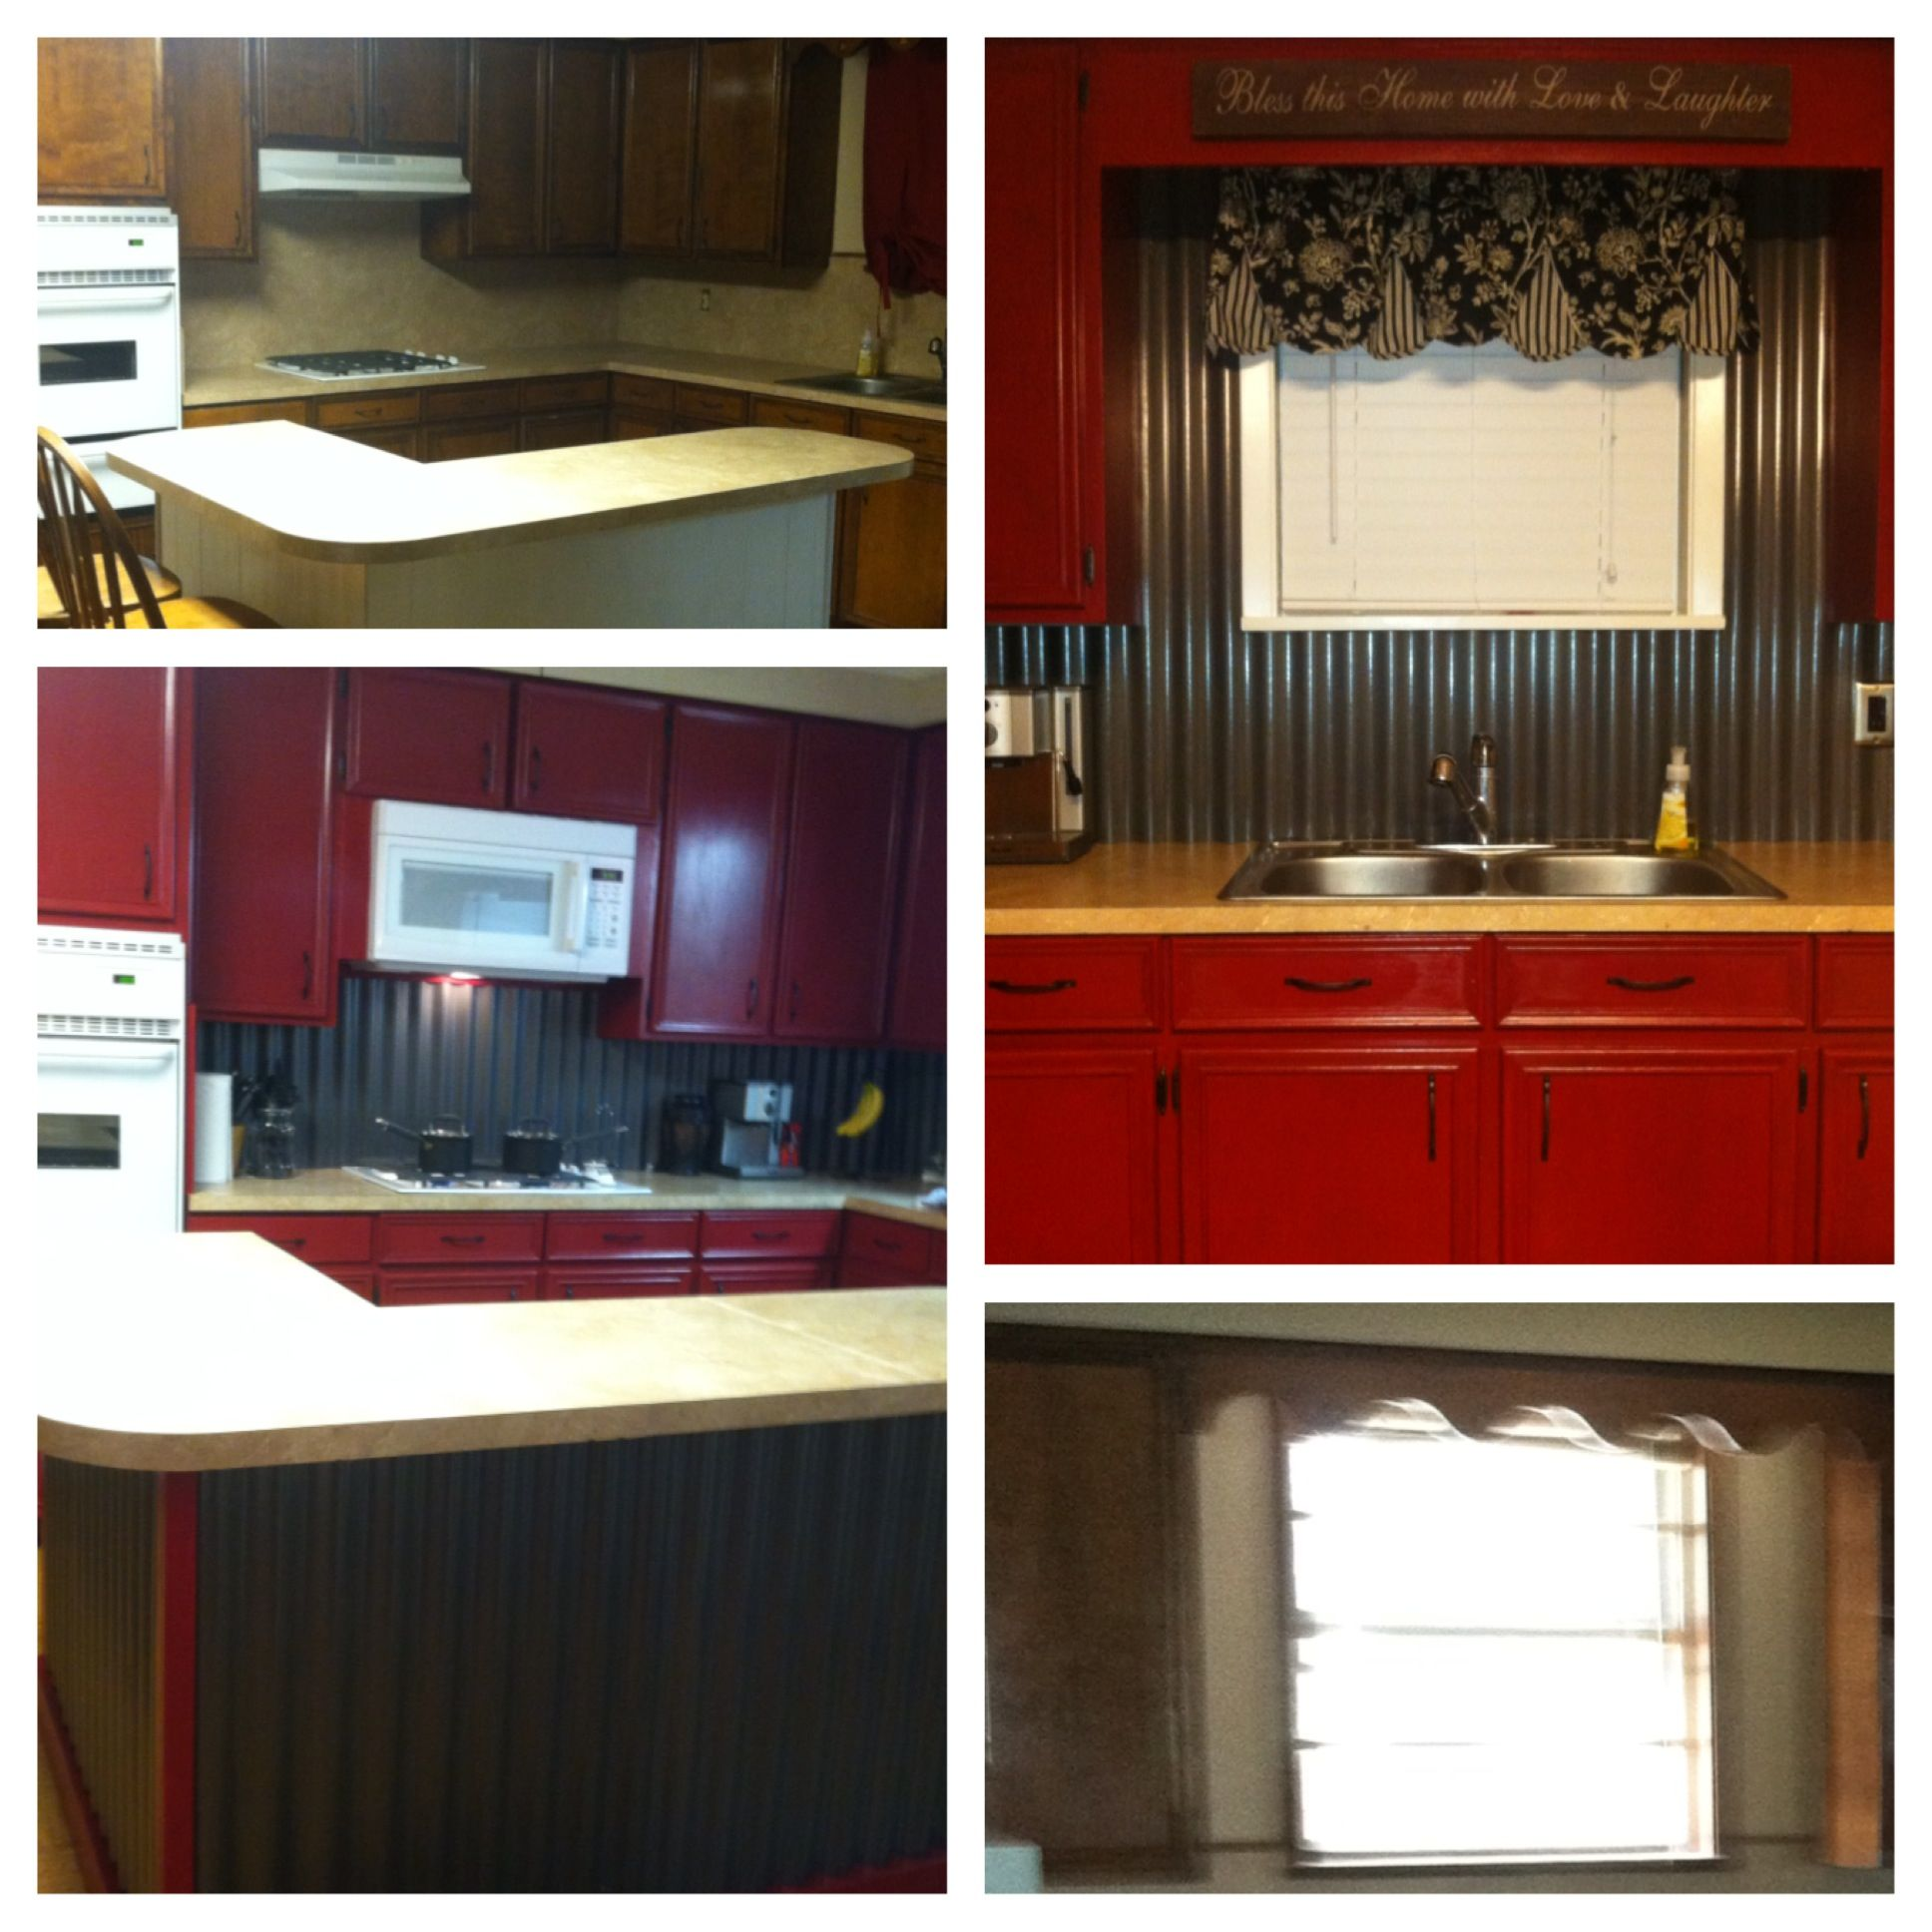 Red Cabinets Corrugated Tin Backsplash Island Our Diy Kitchen Re Do